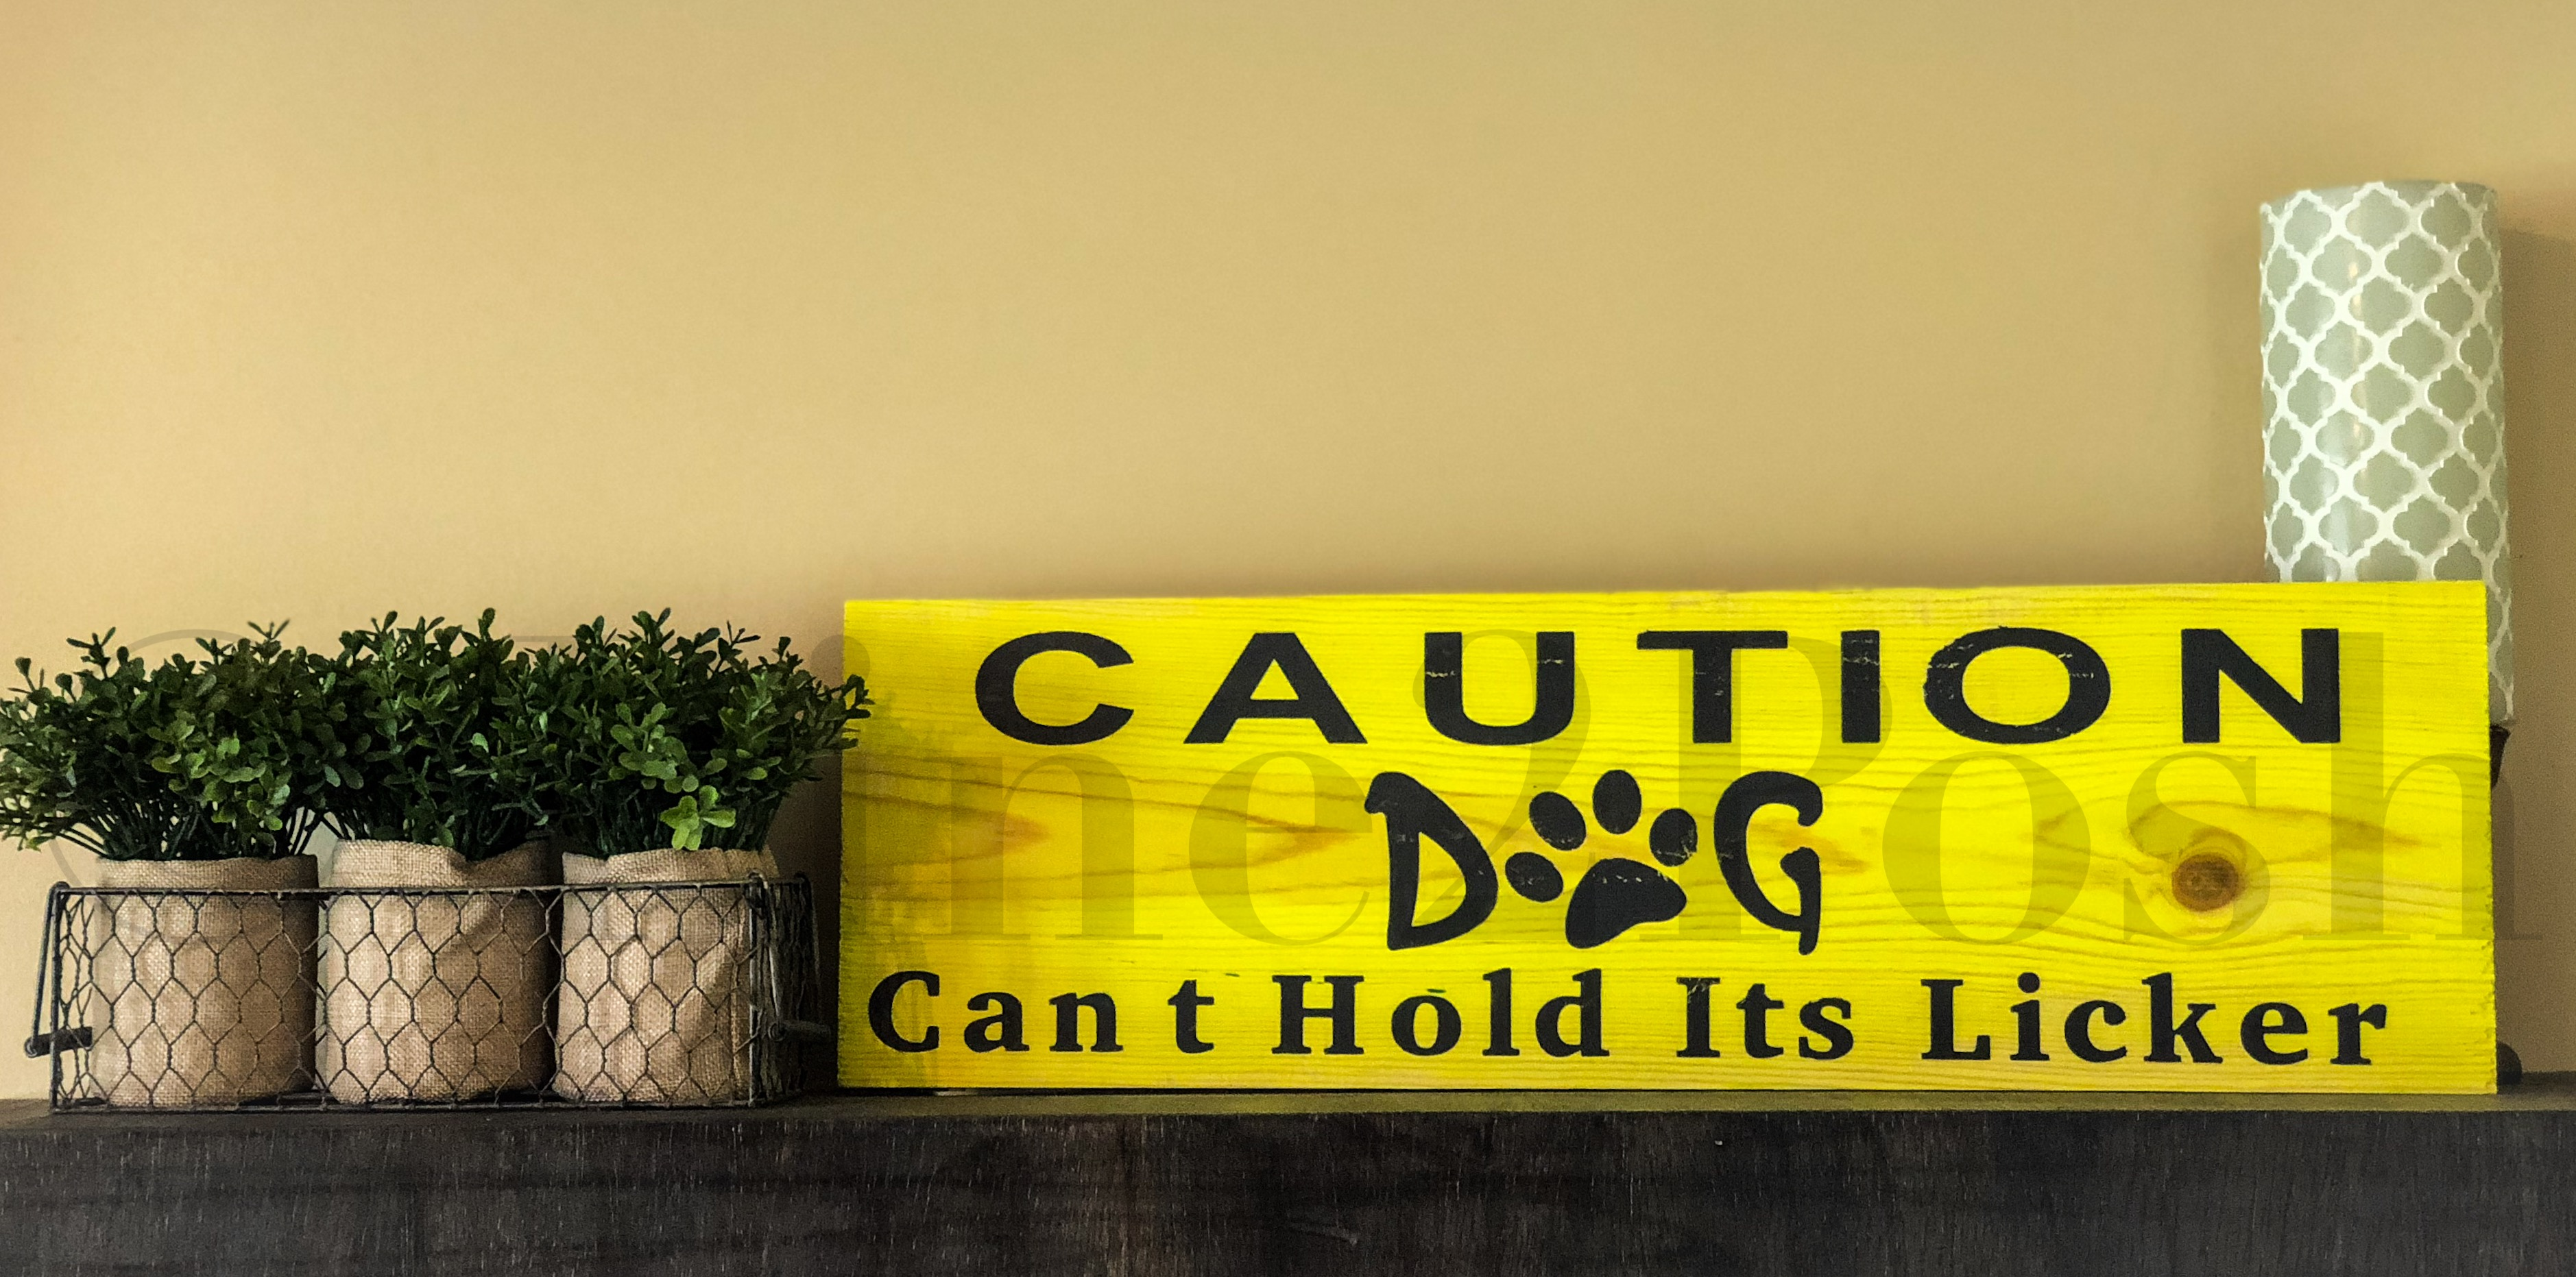 #40 - Caution Dog